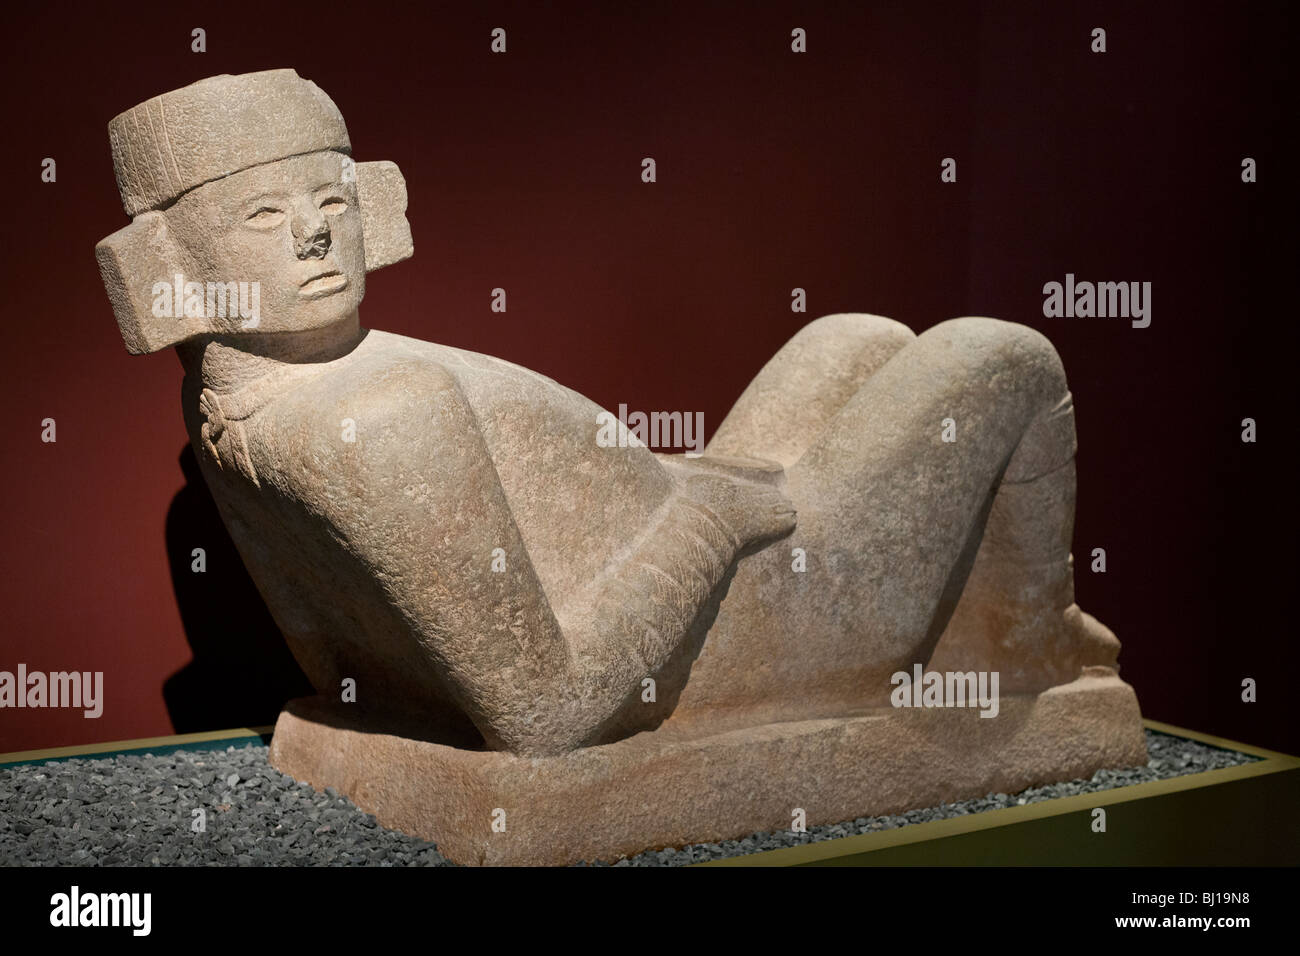 Chac Mool from Chichen Itza. Mayan-Toltec sculpture from 800-900AD. Museum of Archeology, Merida, Yucatan, Mexico - Stock Image